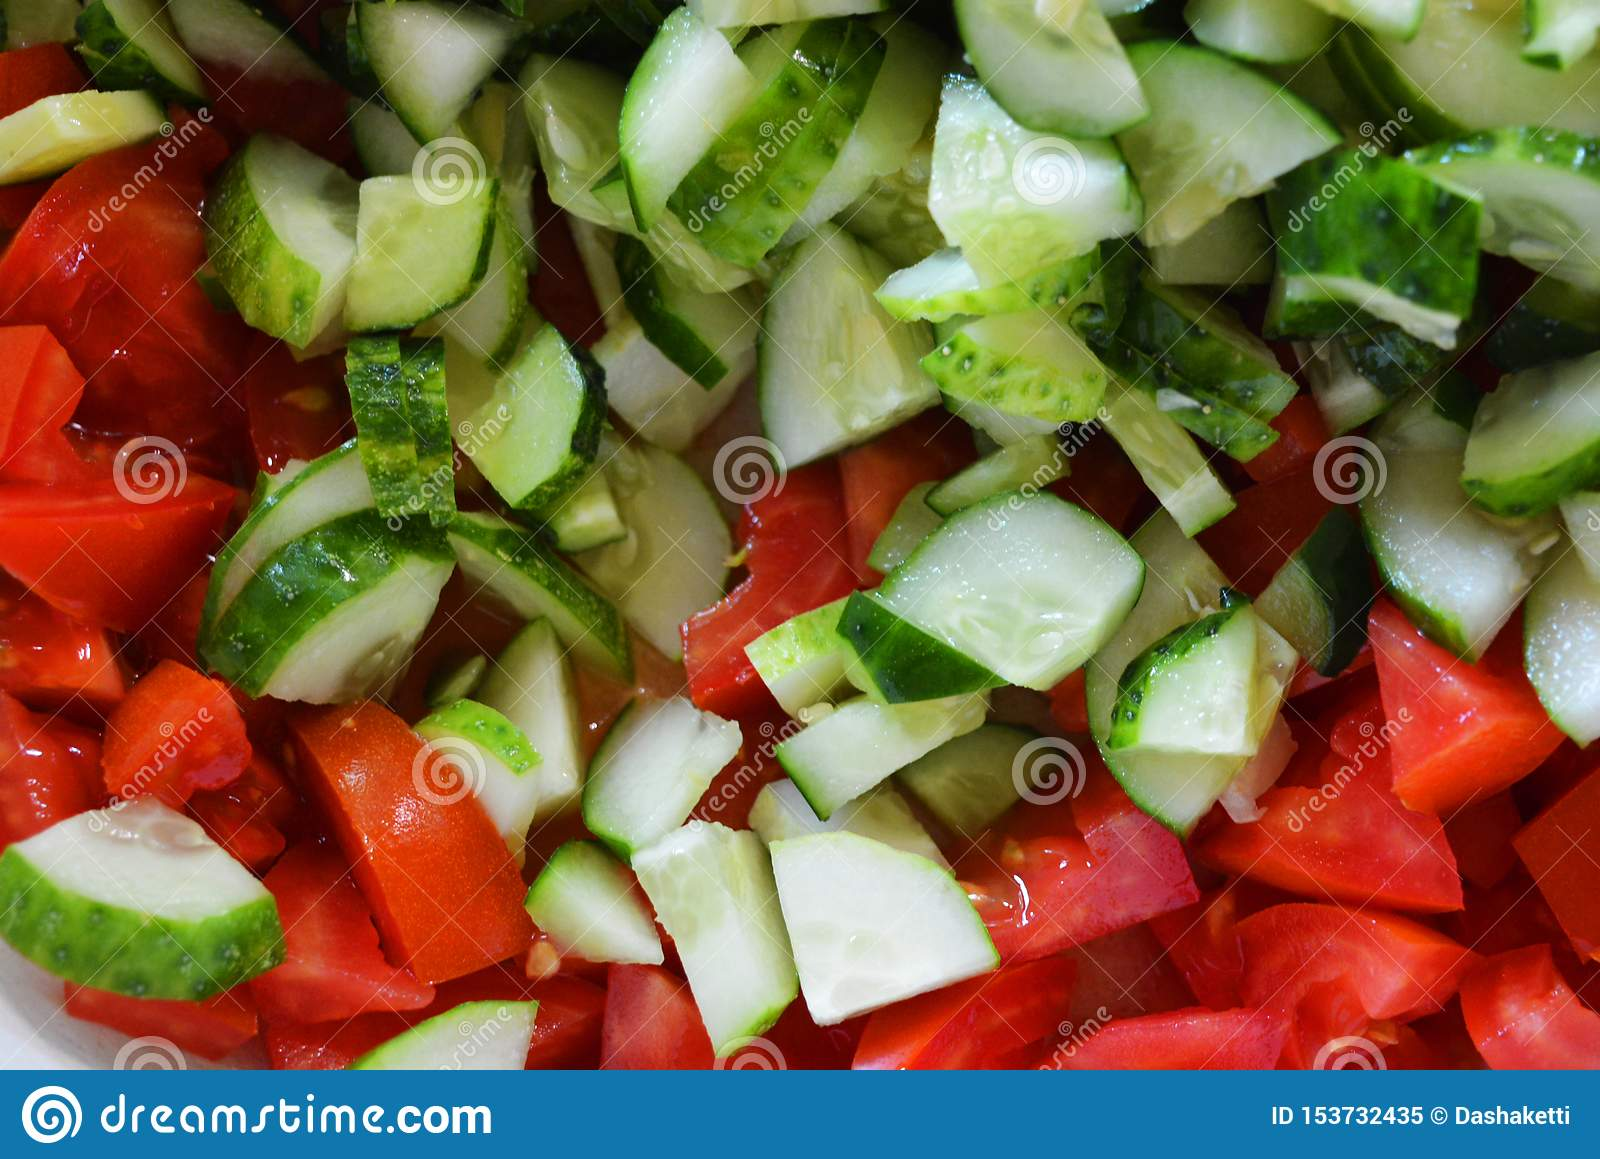 Fresh healthy vegetables, small slices of green cucumbers and red tomatoes for summer salad, ingredients for salad.